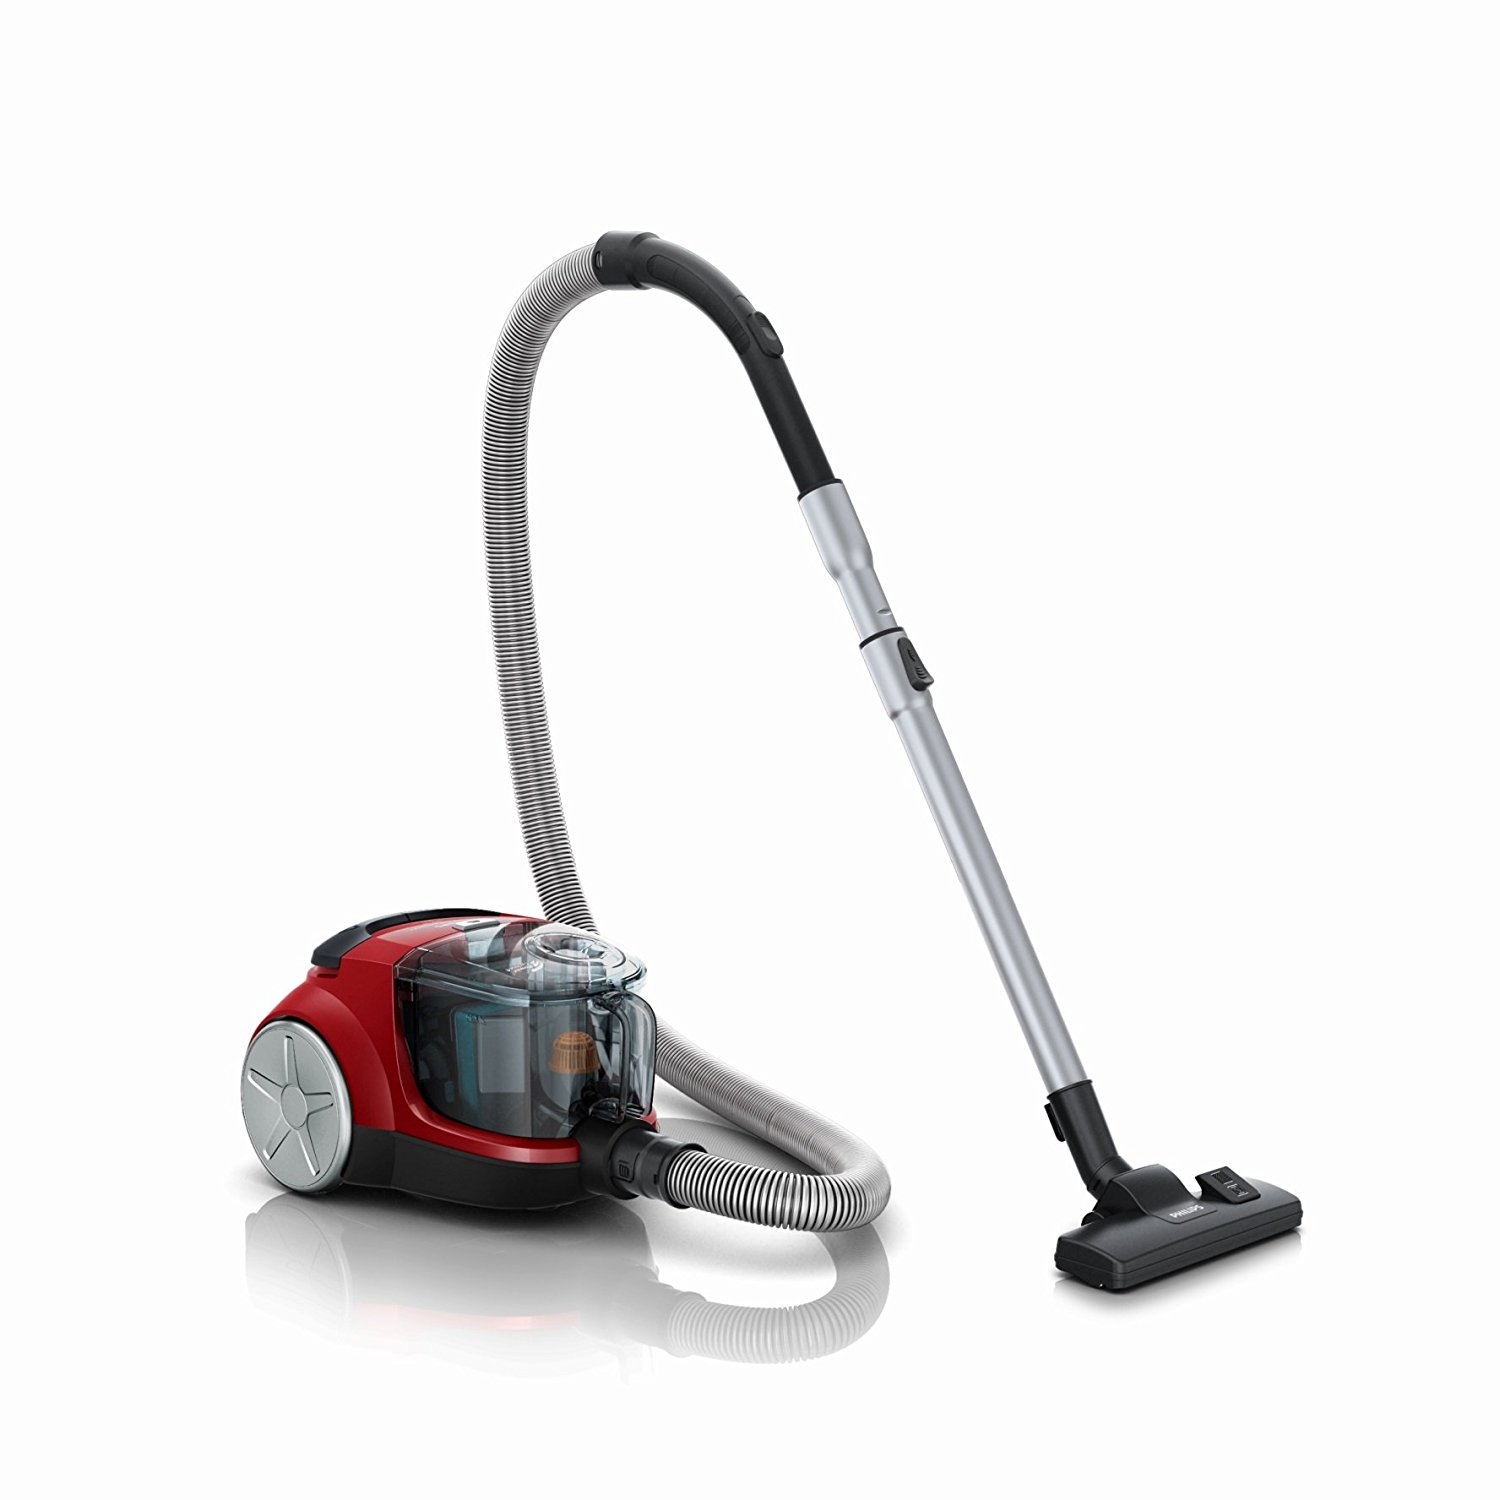 Philips Best Vacuum cleaner